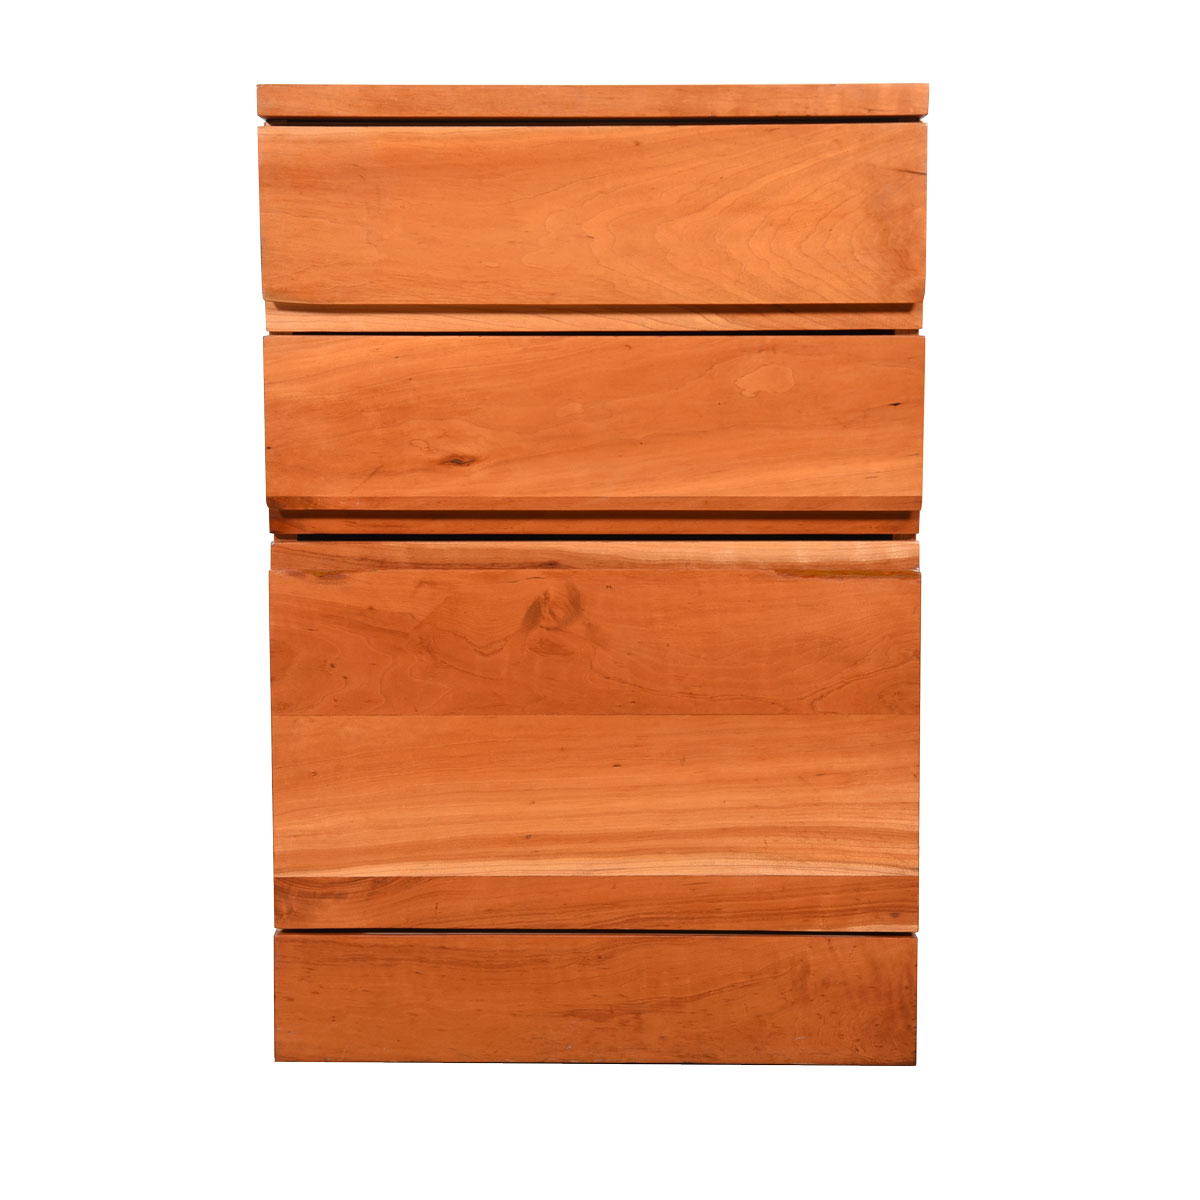 Solid-Cherry American Modernist Three-Drawer File Cabinet   Nightstand   Chest of Drawers